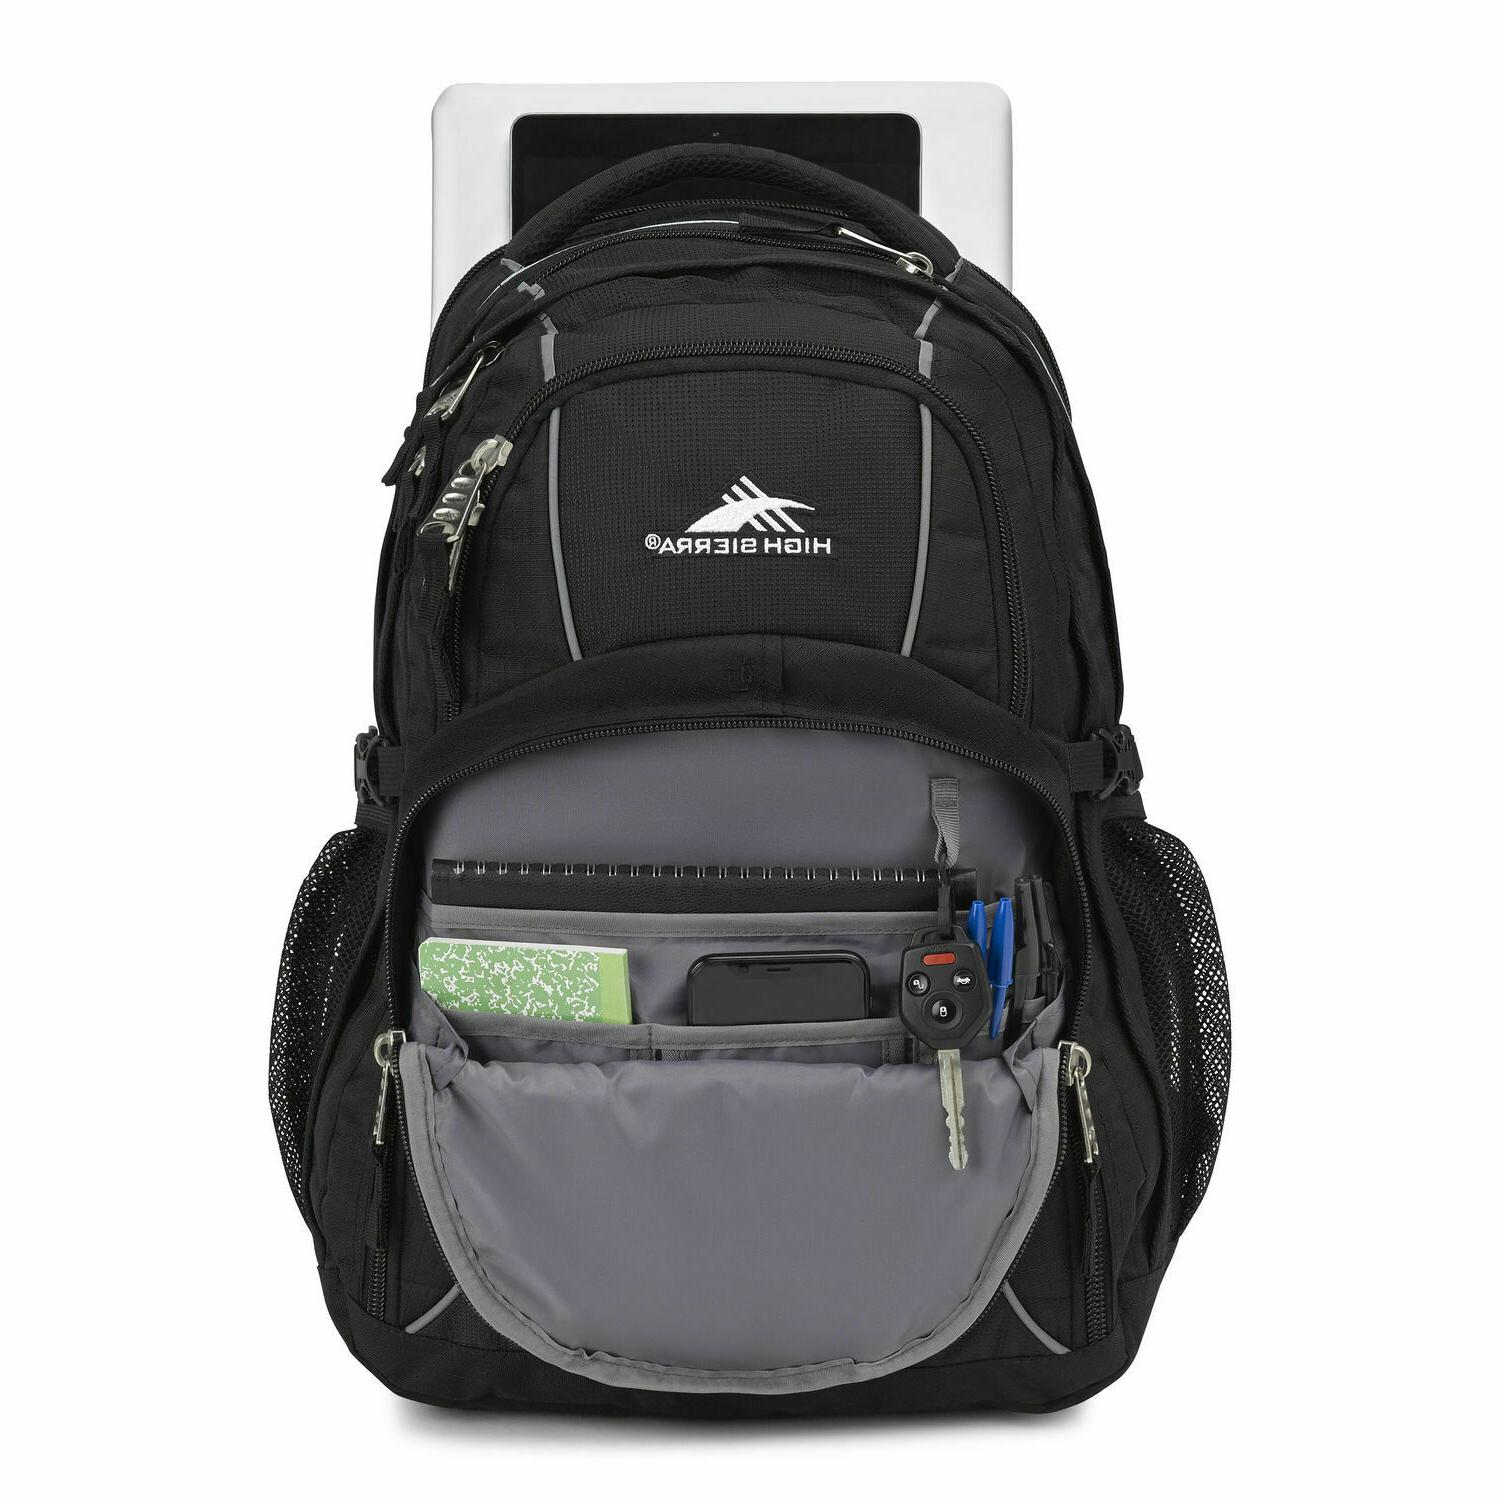 NWT 17-in. Backpack - shipping